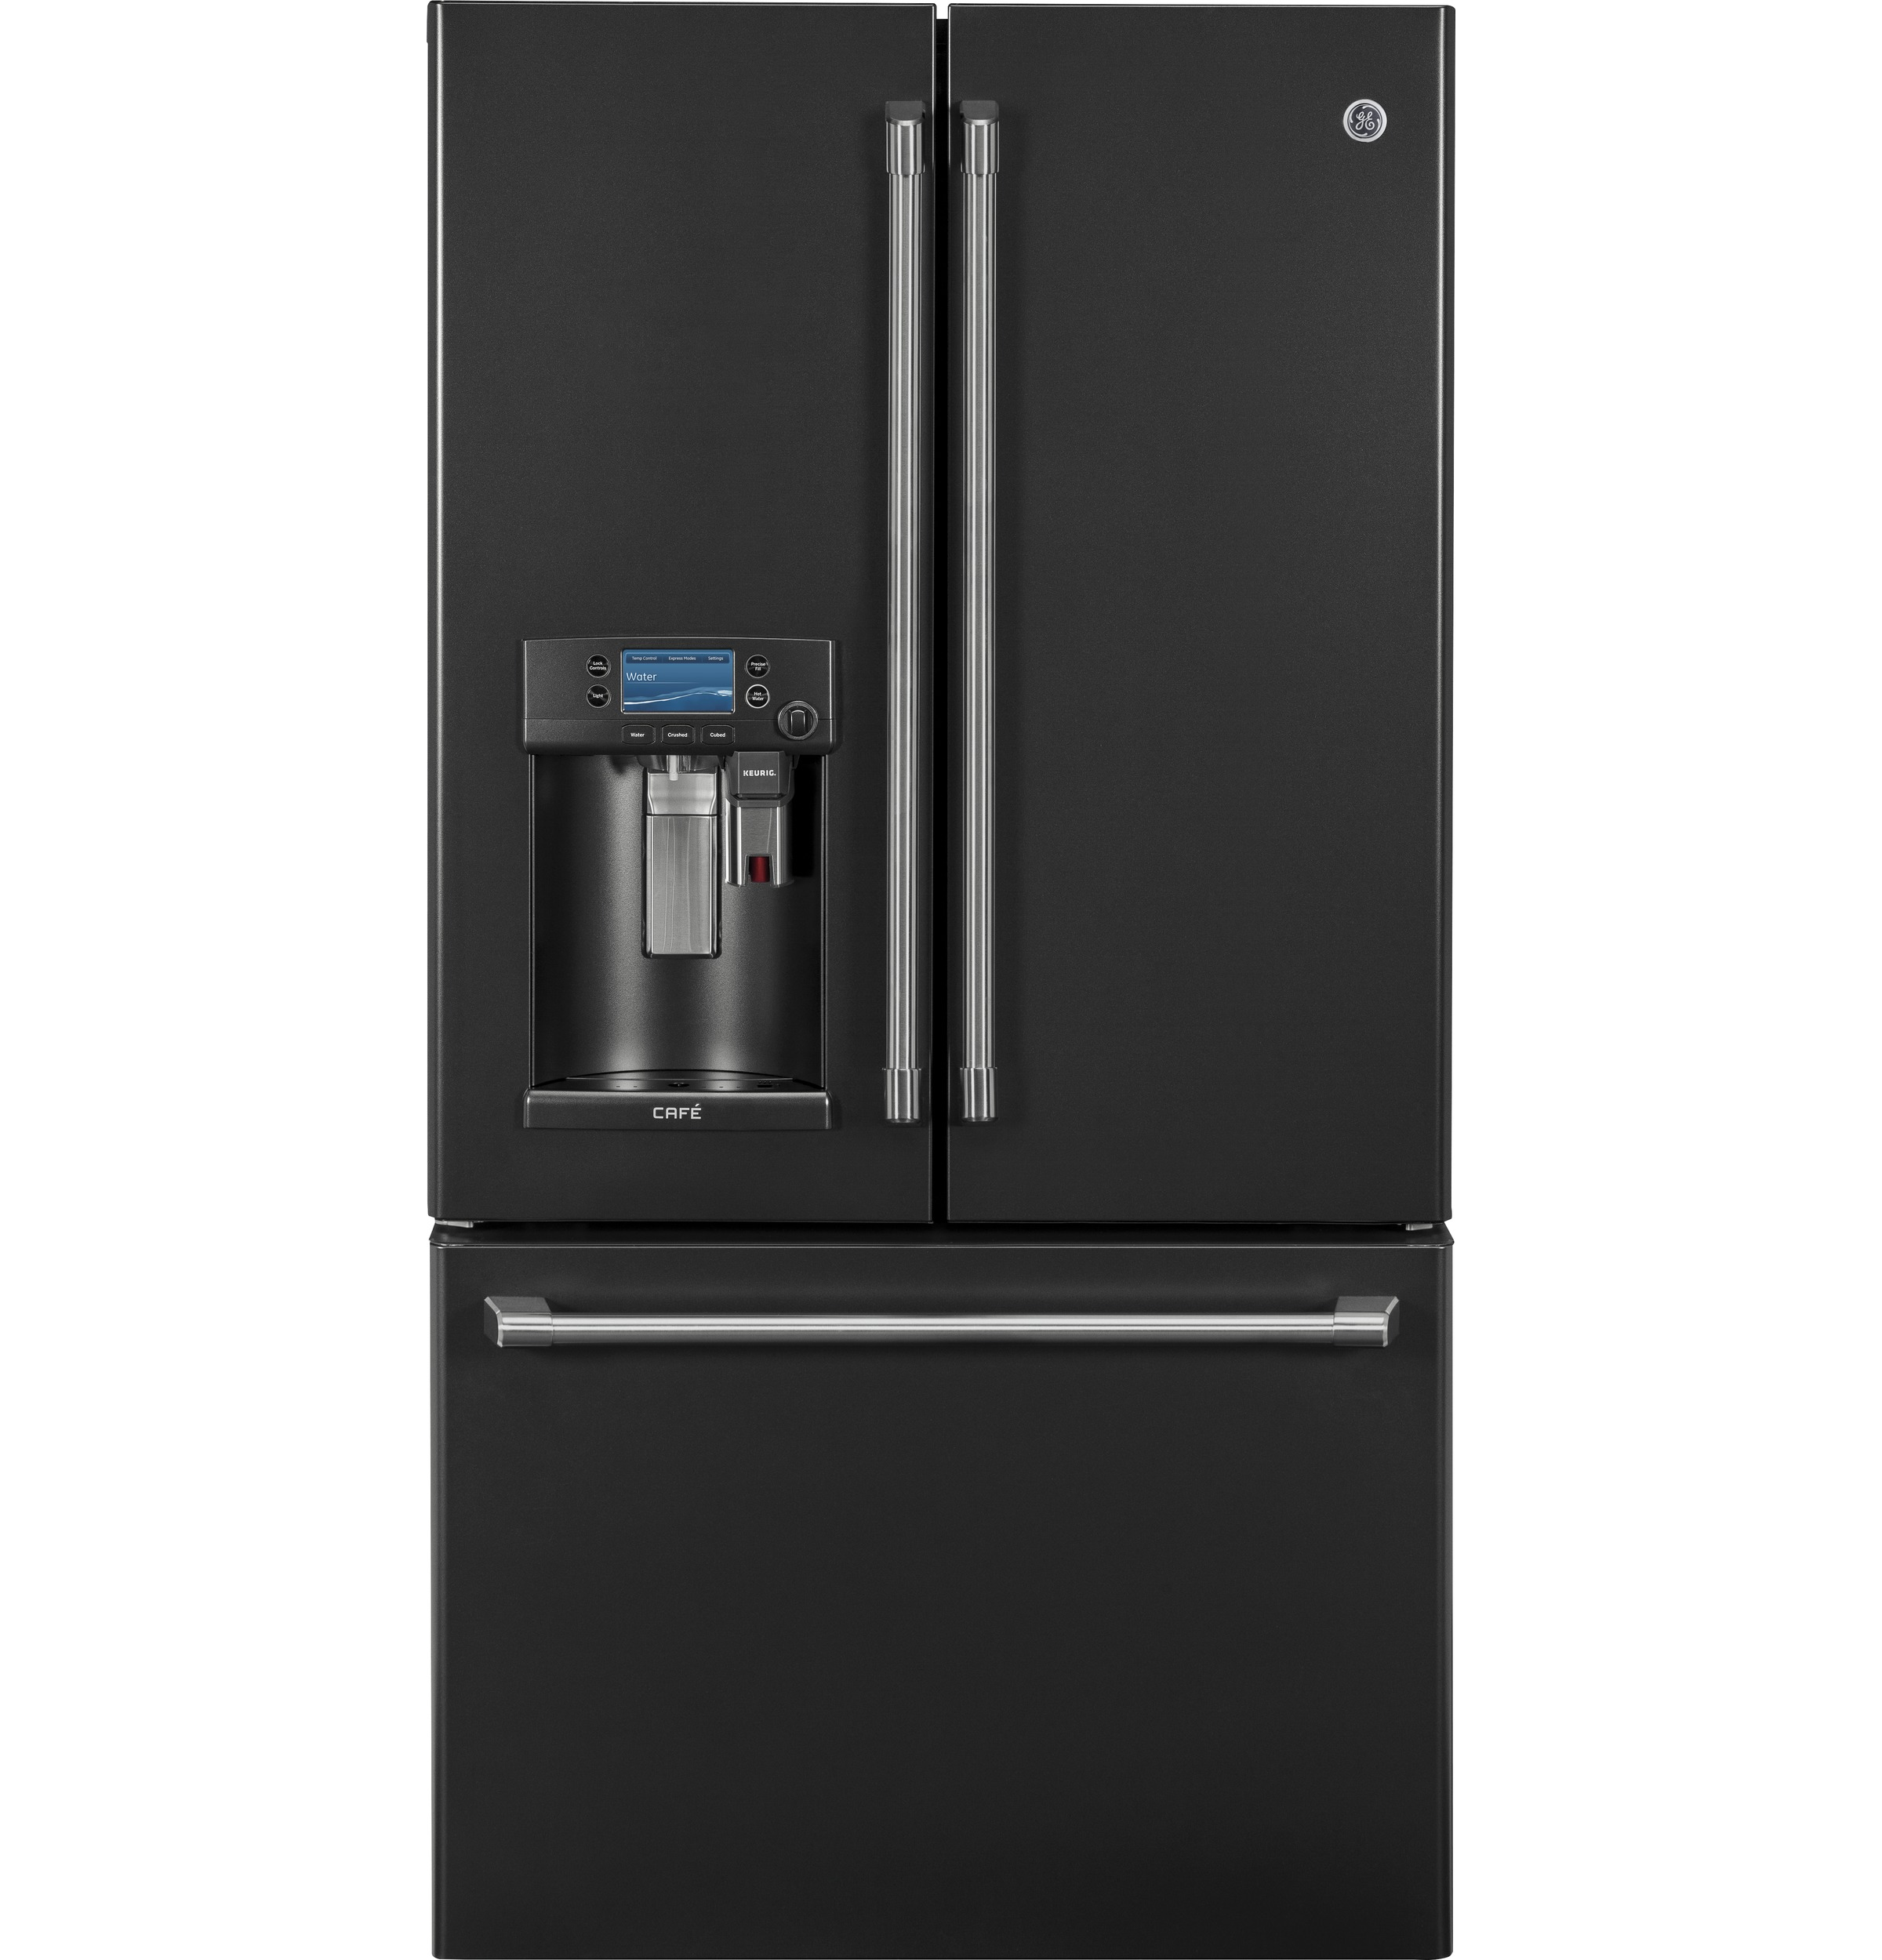 GE Café™ Series ENERGY STAR® 22.2 Cu. Ft. Counter-Depth French-Door Refrigerator with Keurig® K-Cup®